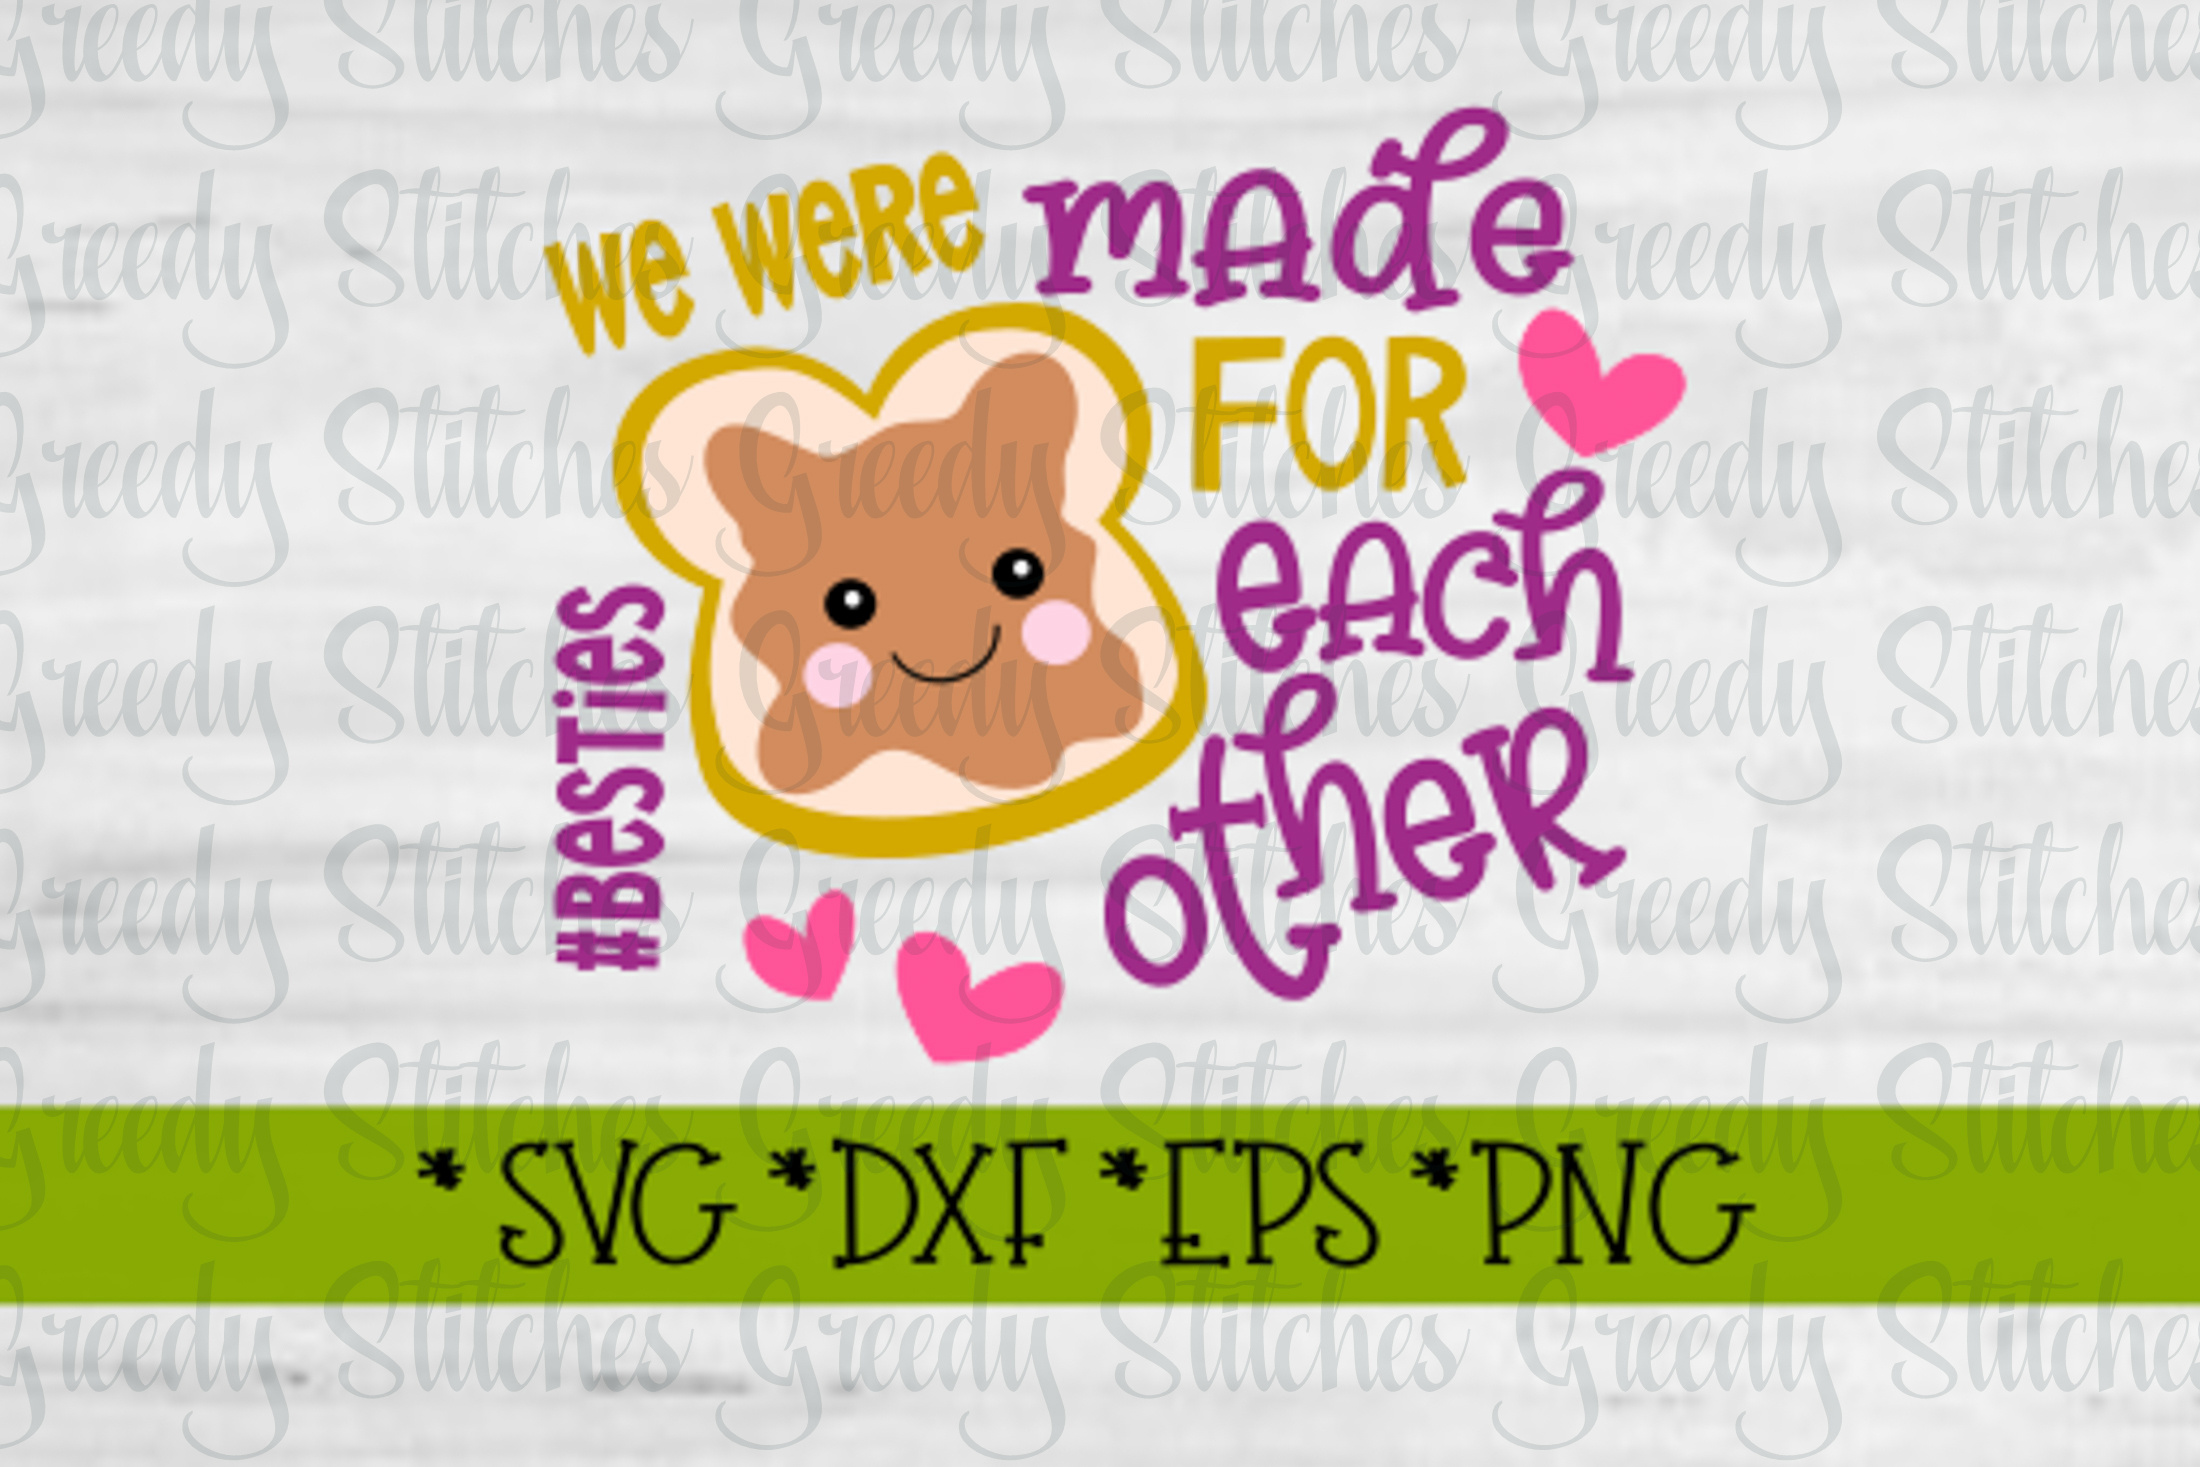 Peanut Butter & Jelly SVG DXF EPS PNG | Best Friends SVG DXF example image 6